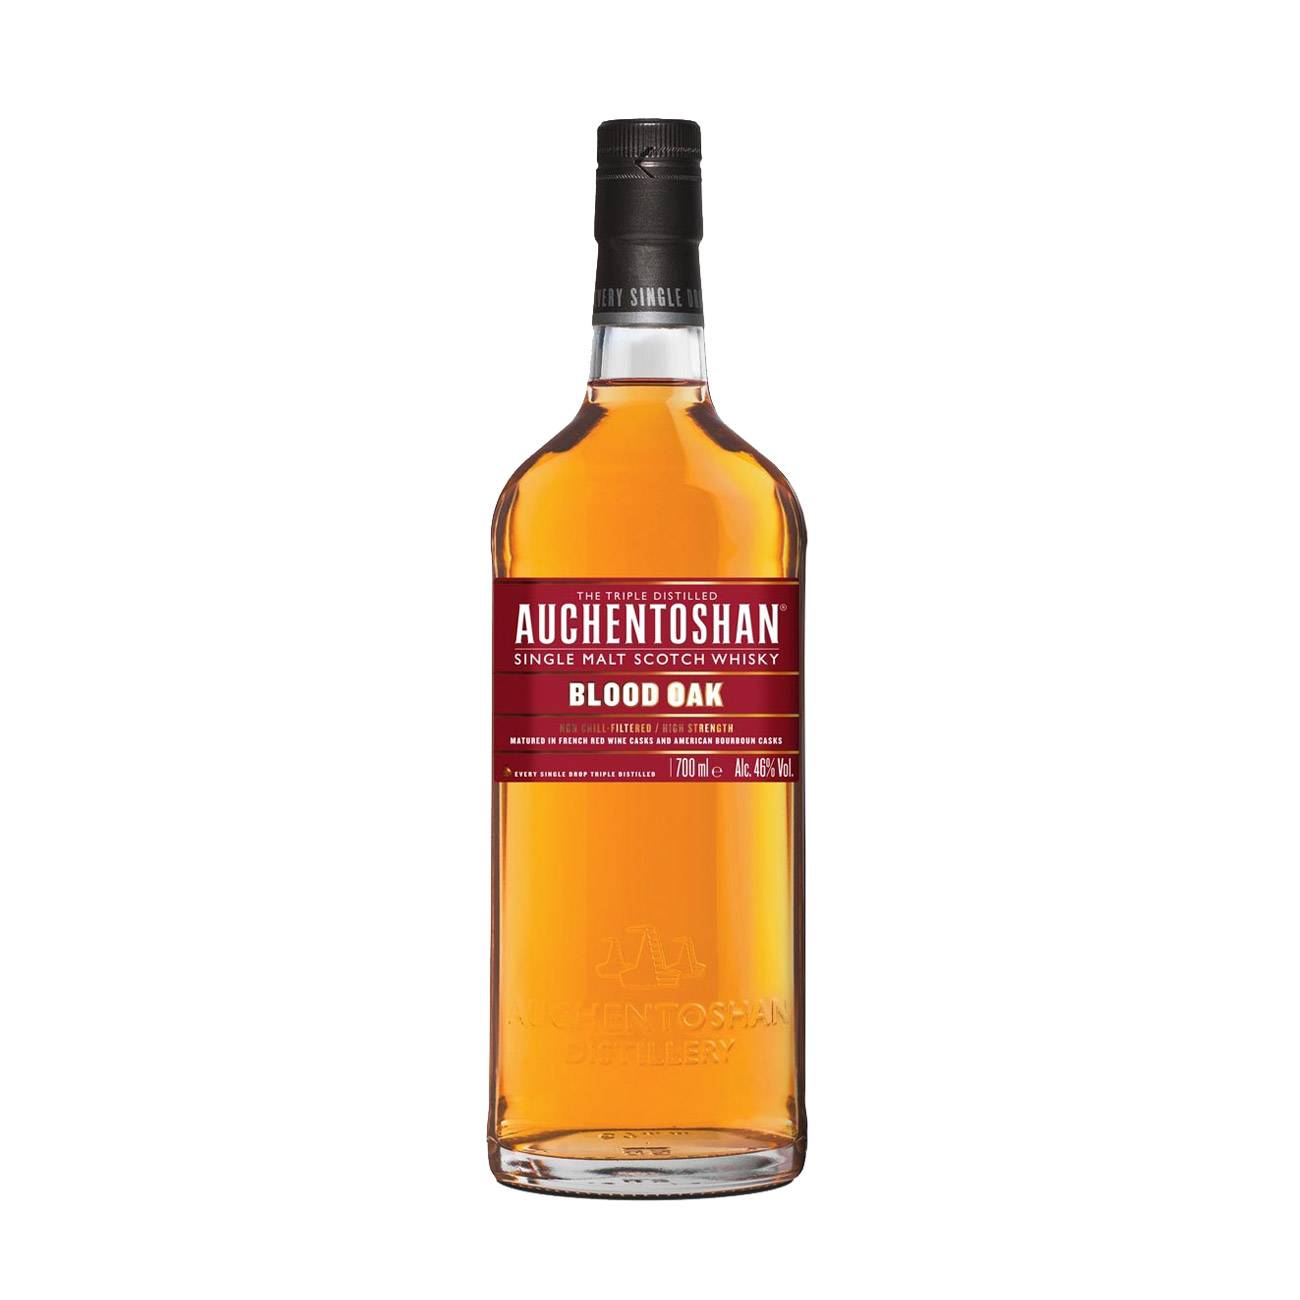 Whisky scotian, BLOOD OAK 700 Ml, Auchentoshan